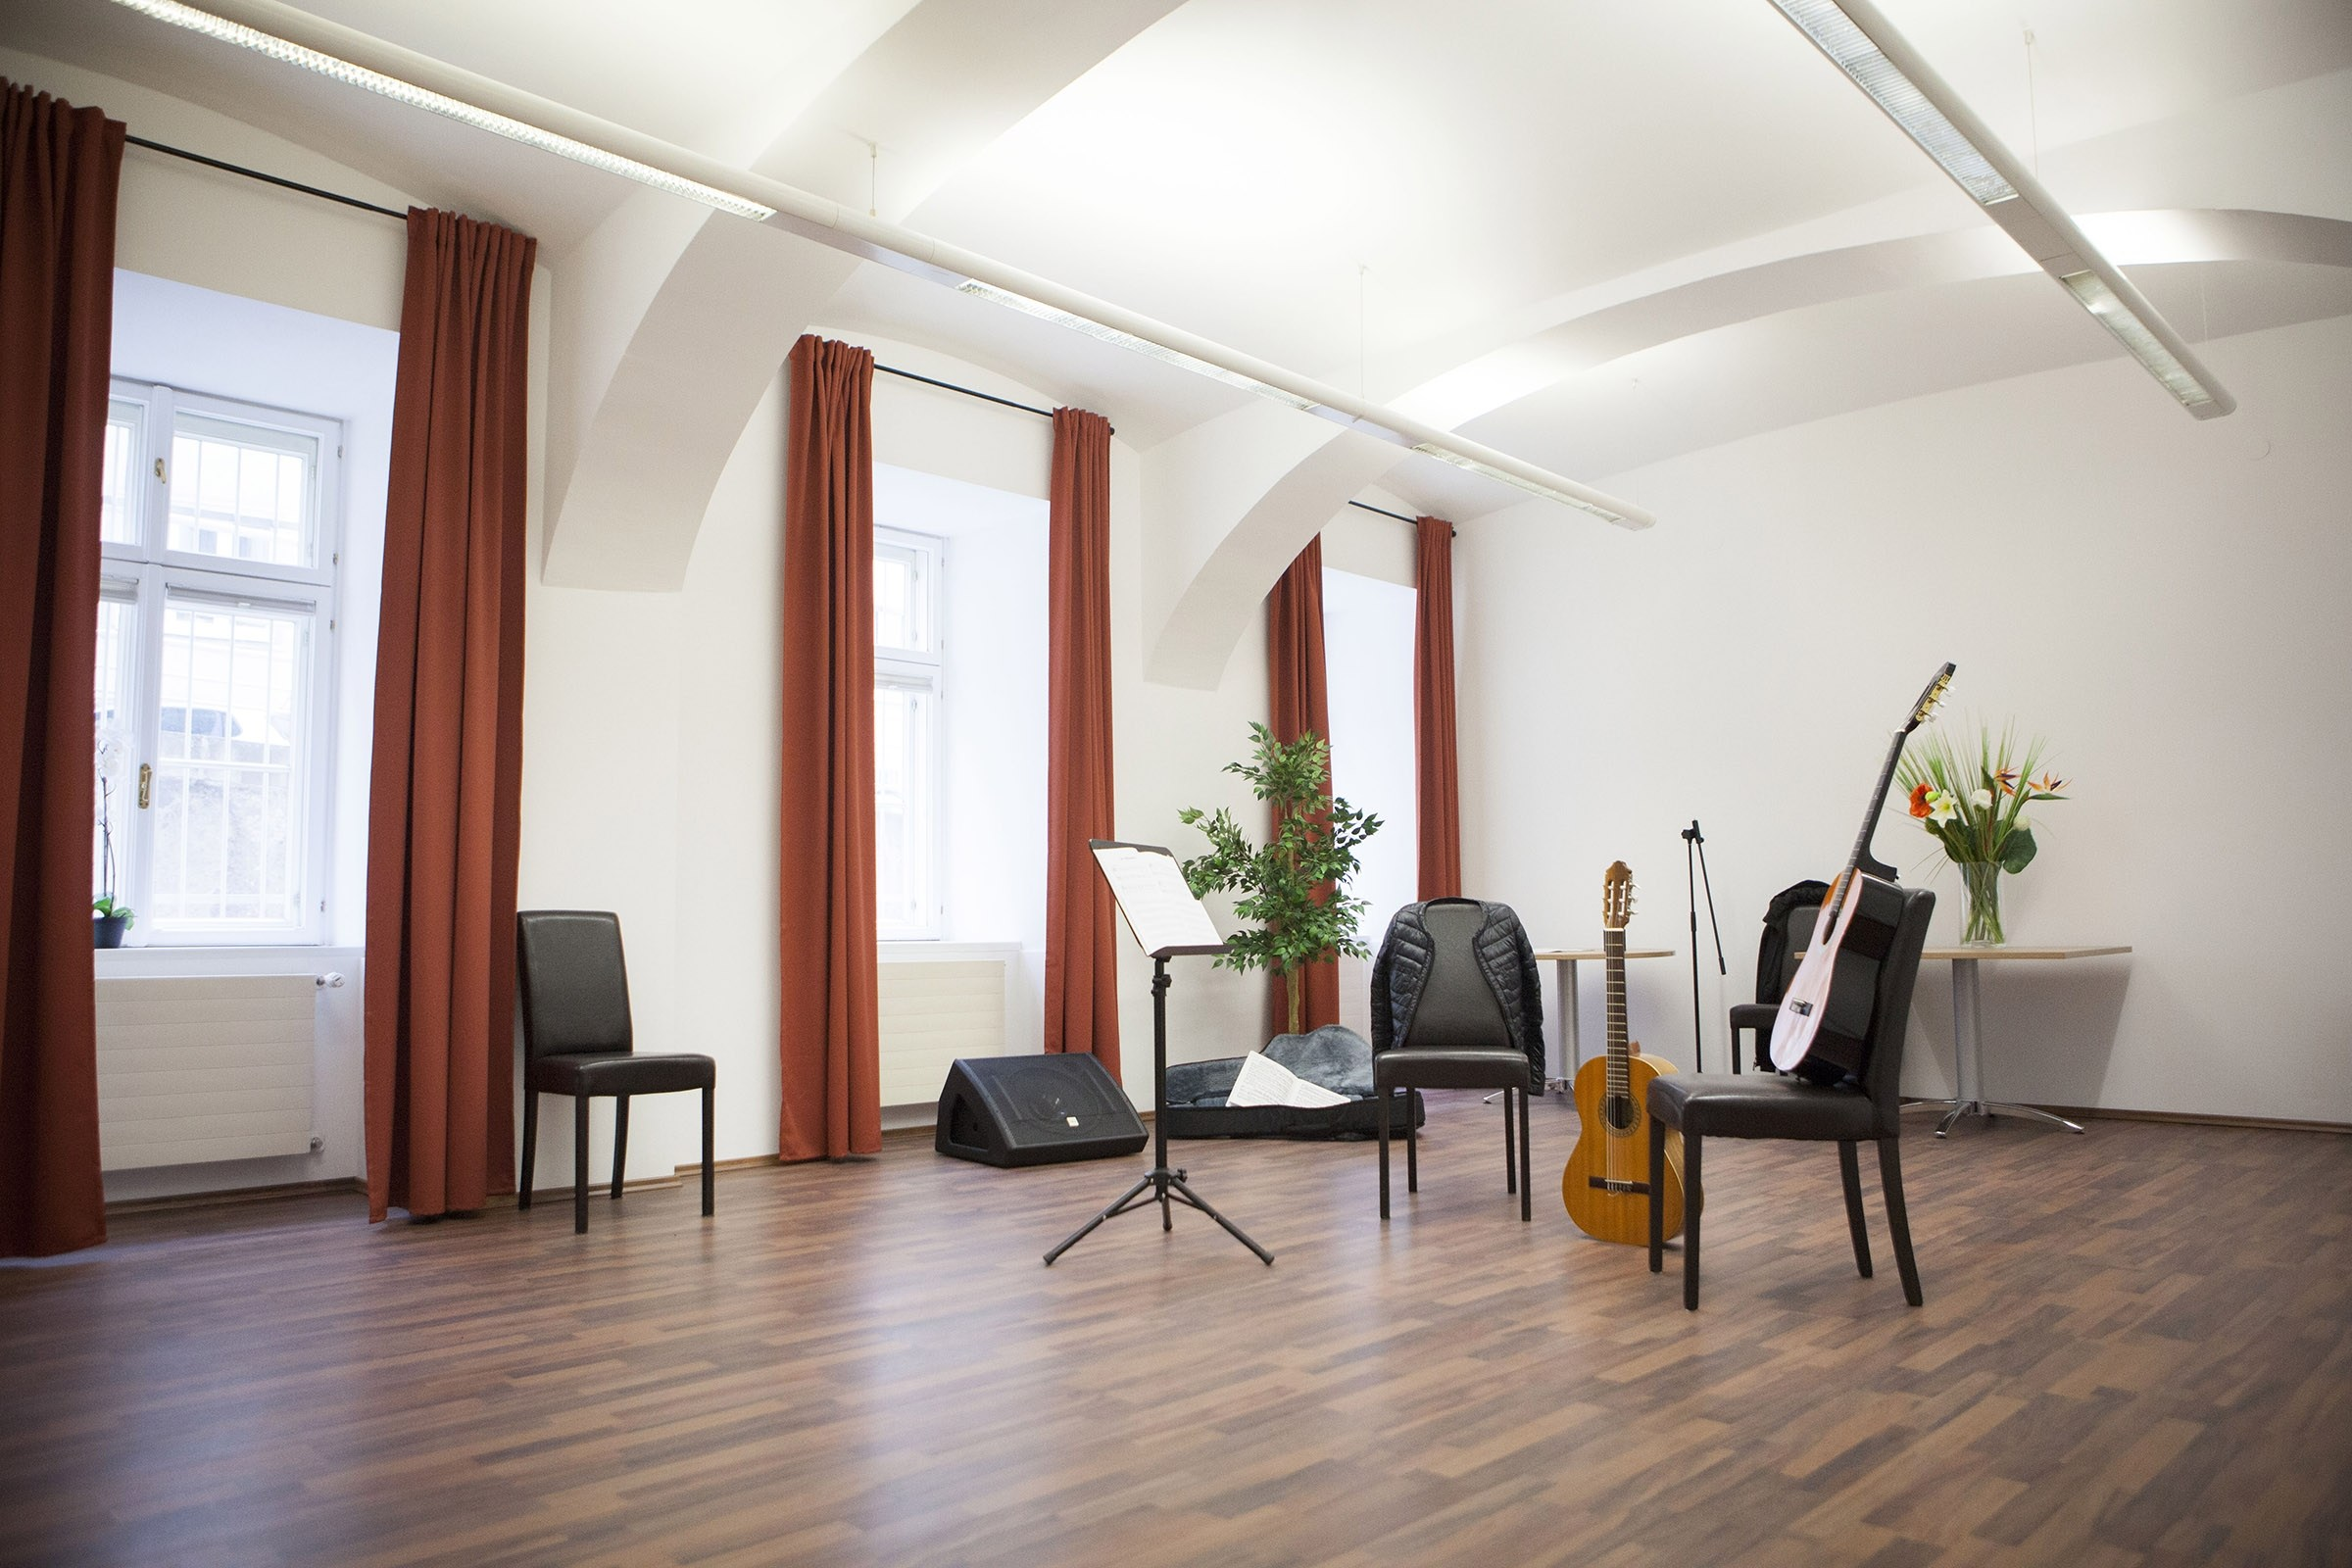 Vimac Music Lessons Practice Rooms And Concert Hall For Rent